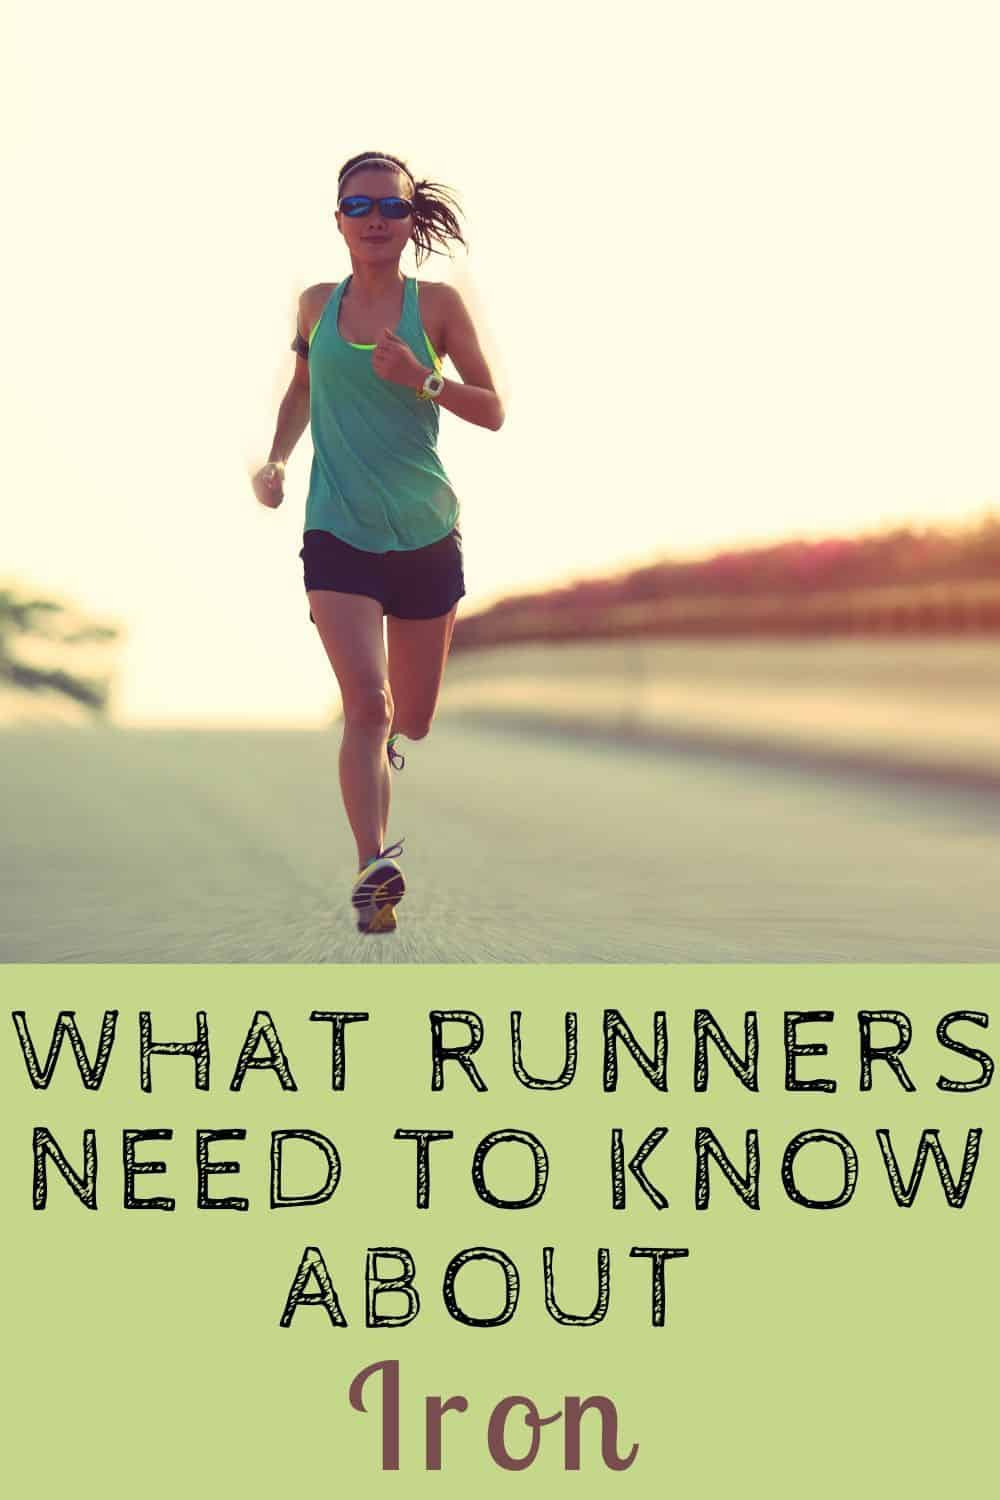 Do Runners Need More Iron? Spotting Iron Deficiency in Runners